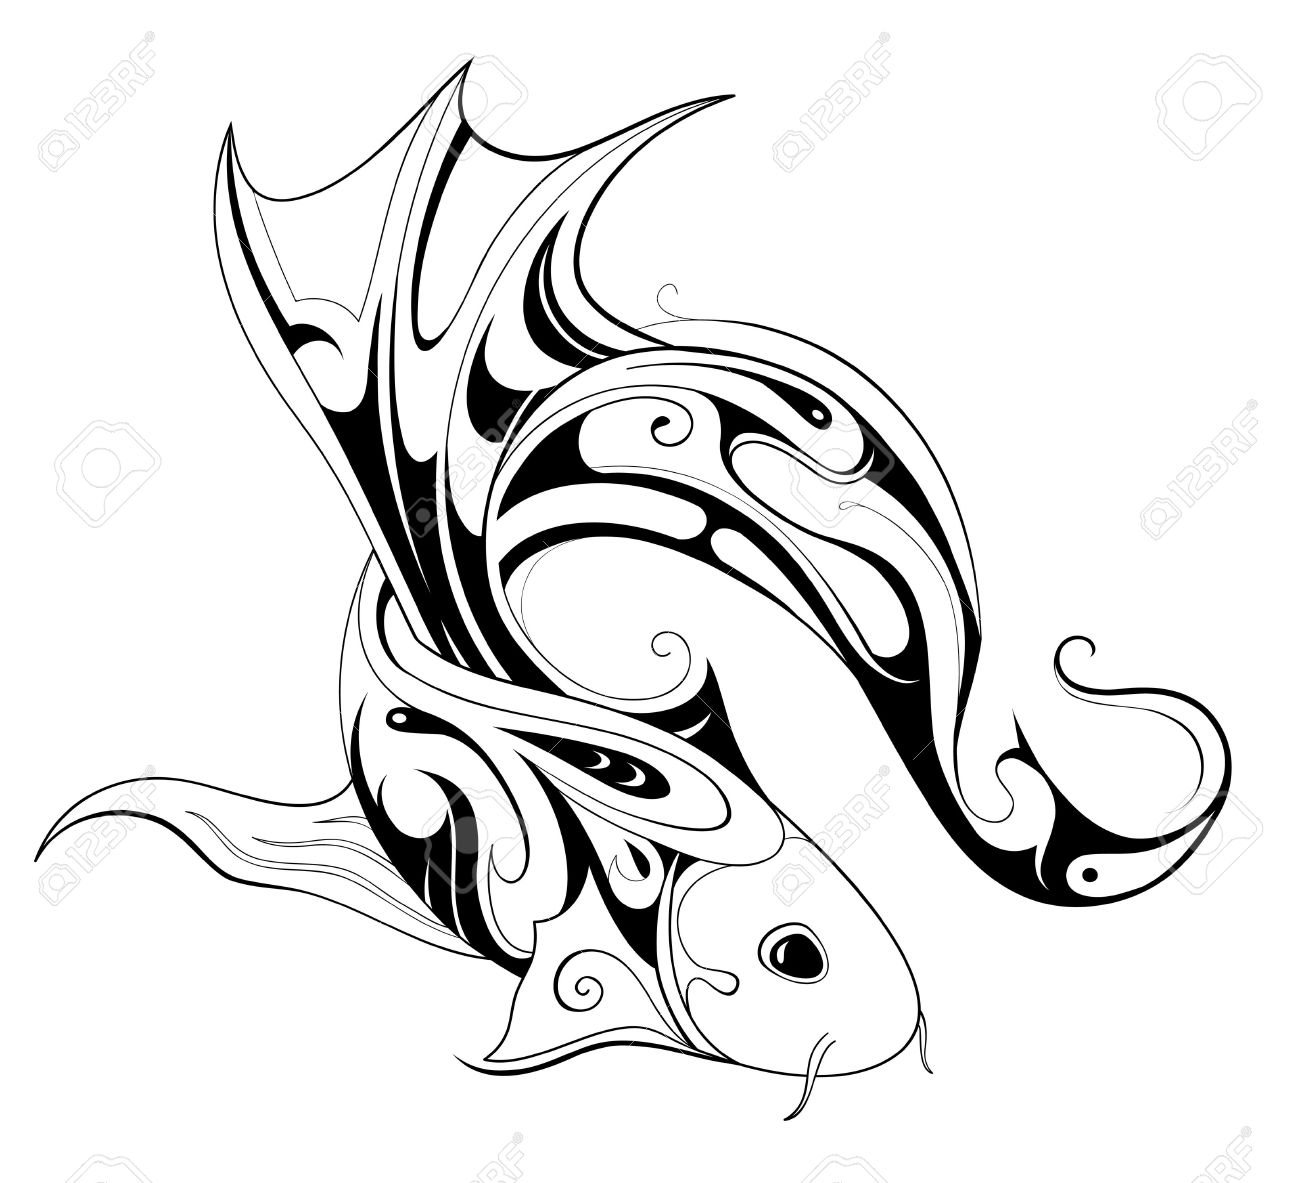 Koi Fish clipart #7, Download drawings